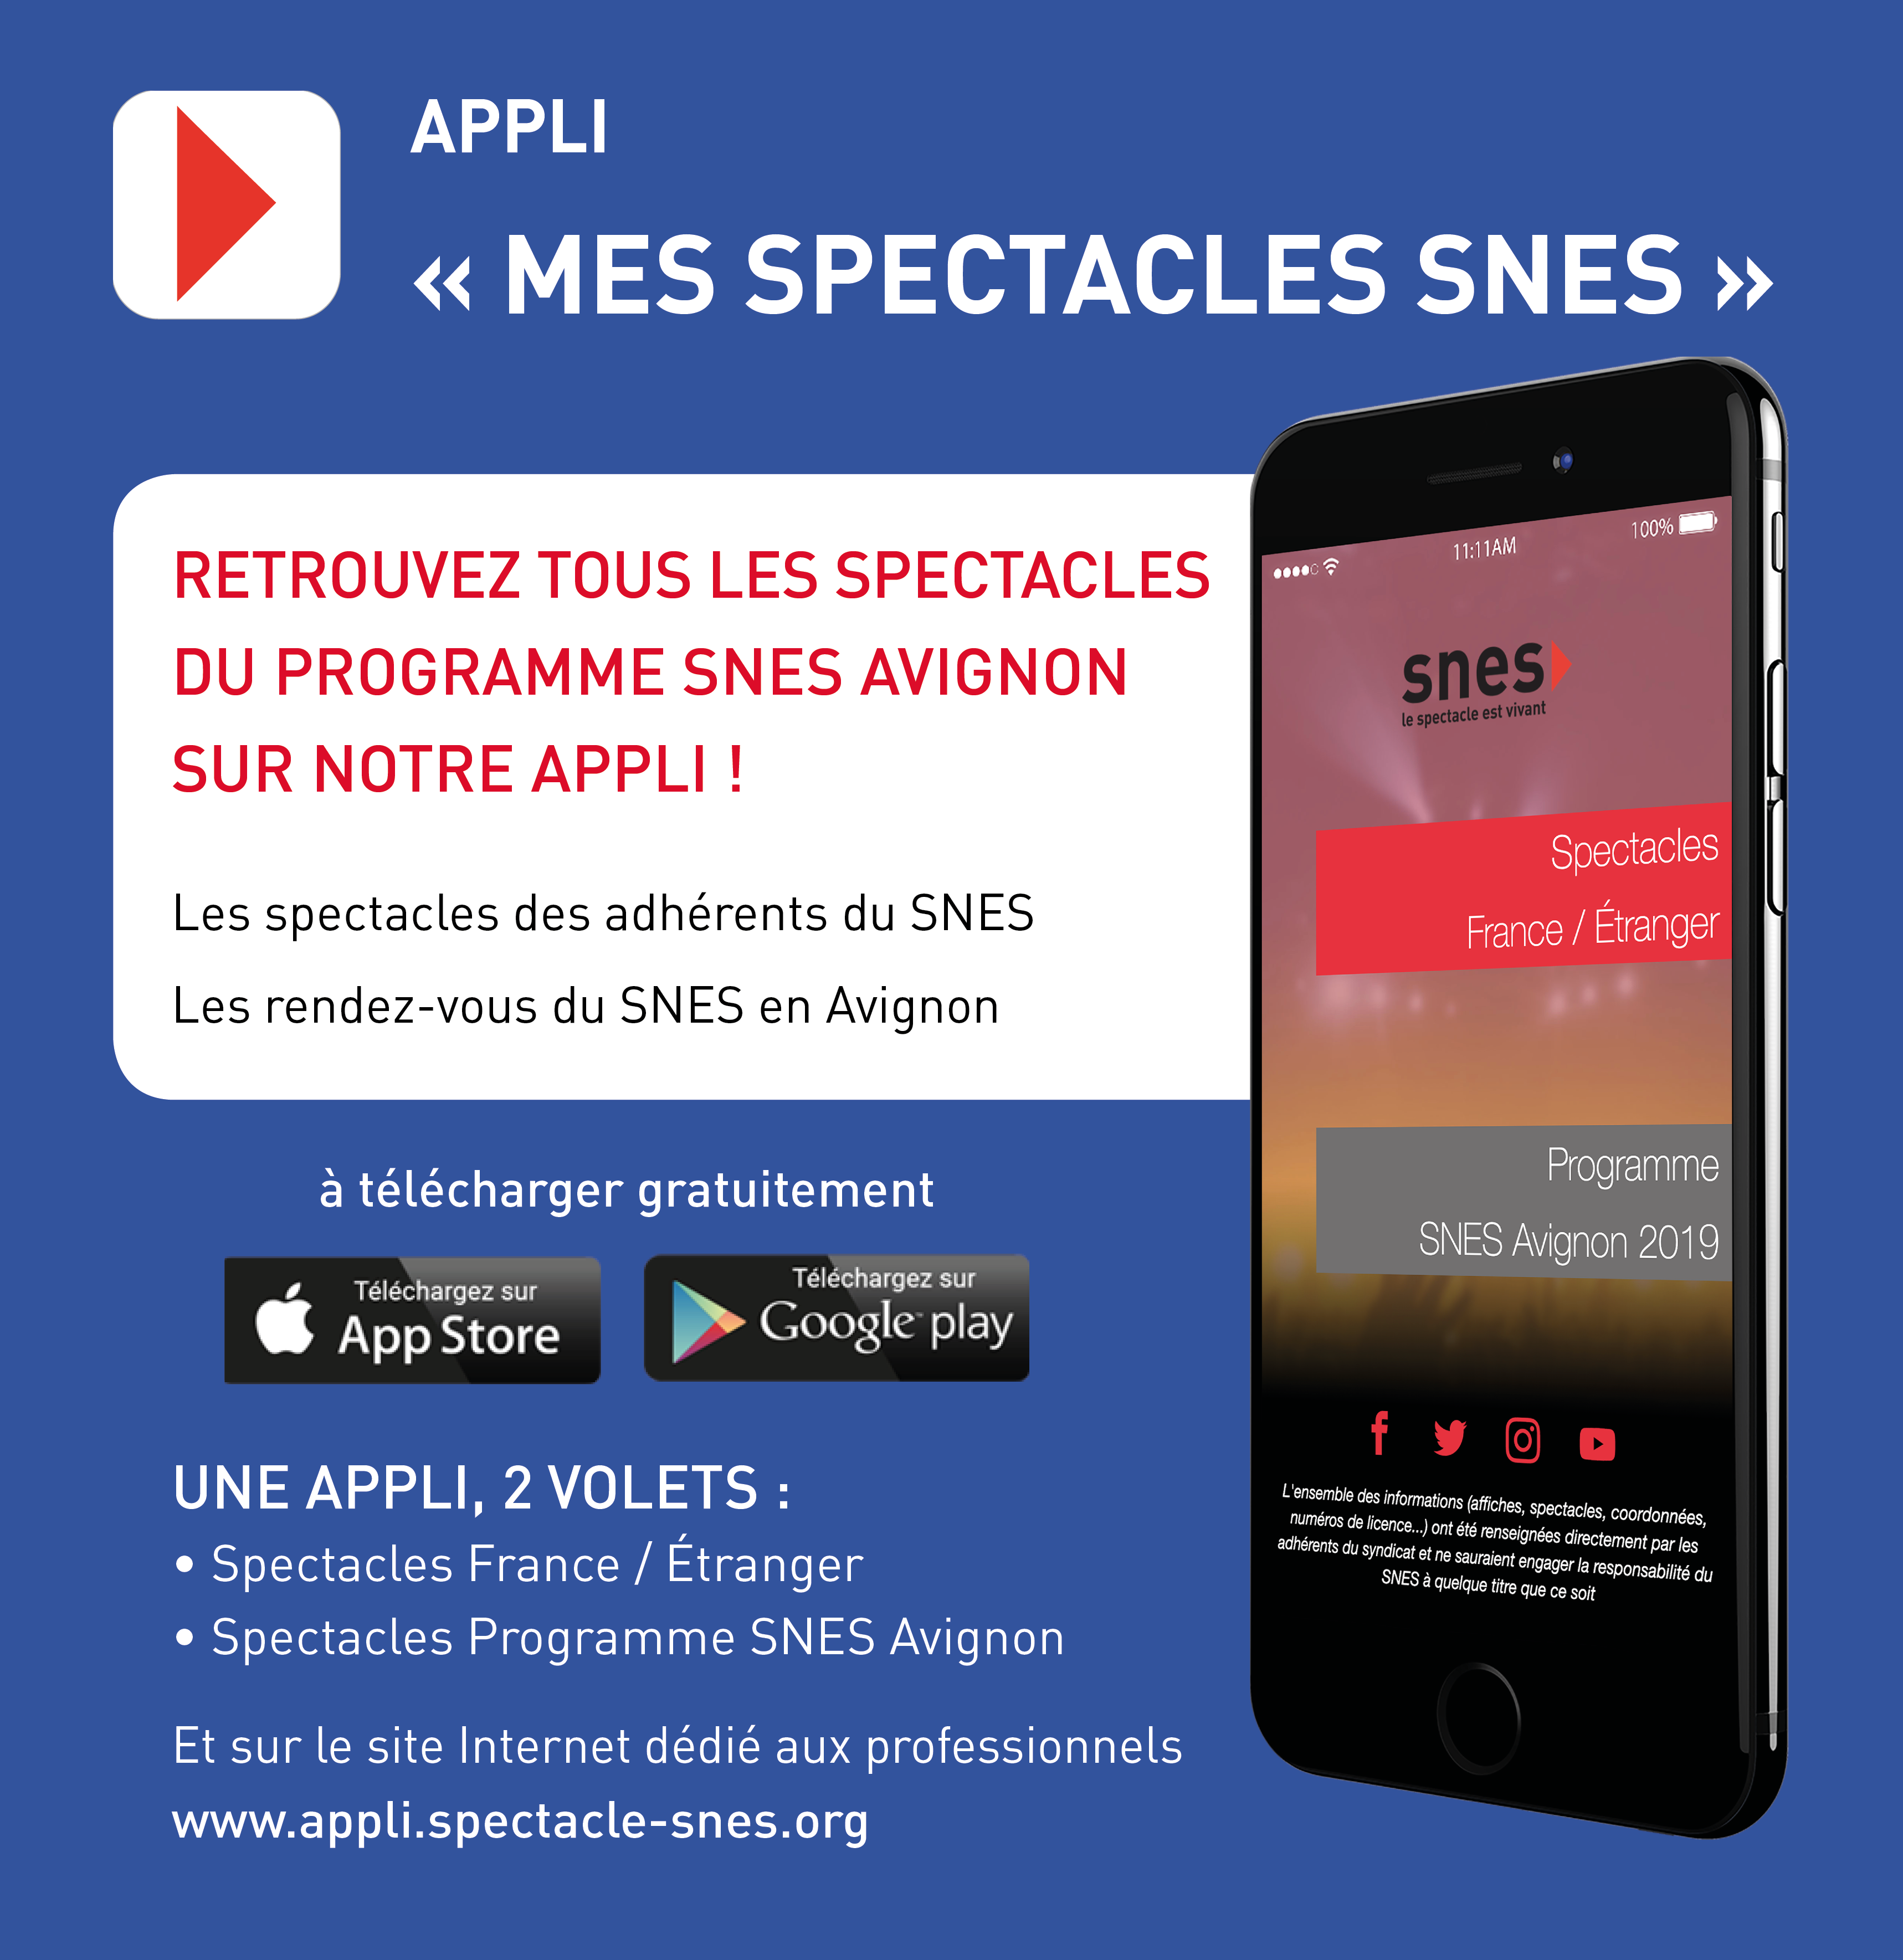 appli_mes-spectacles-snes